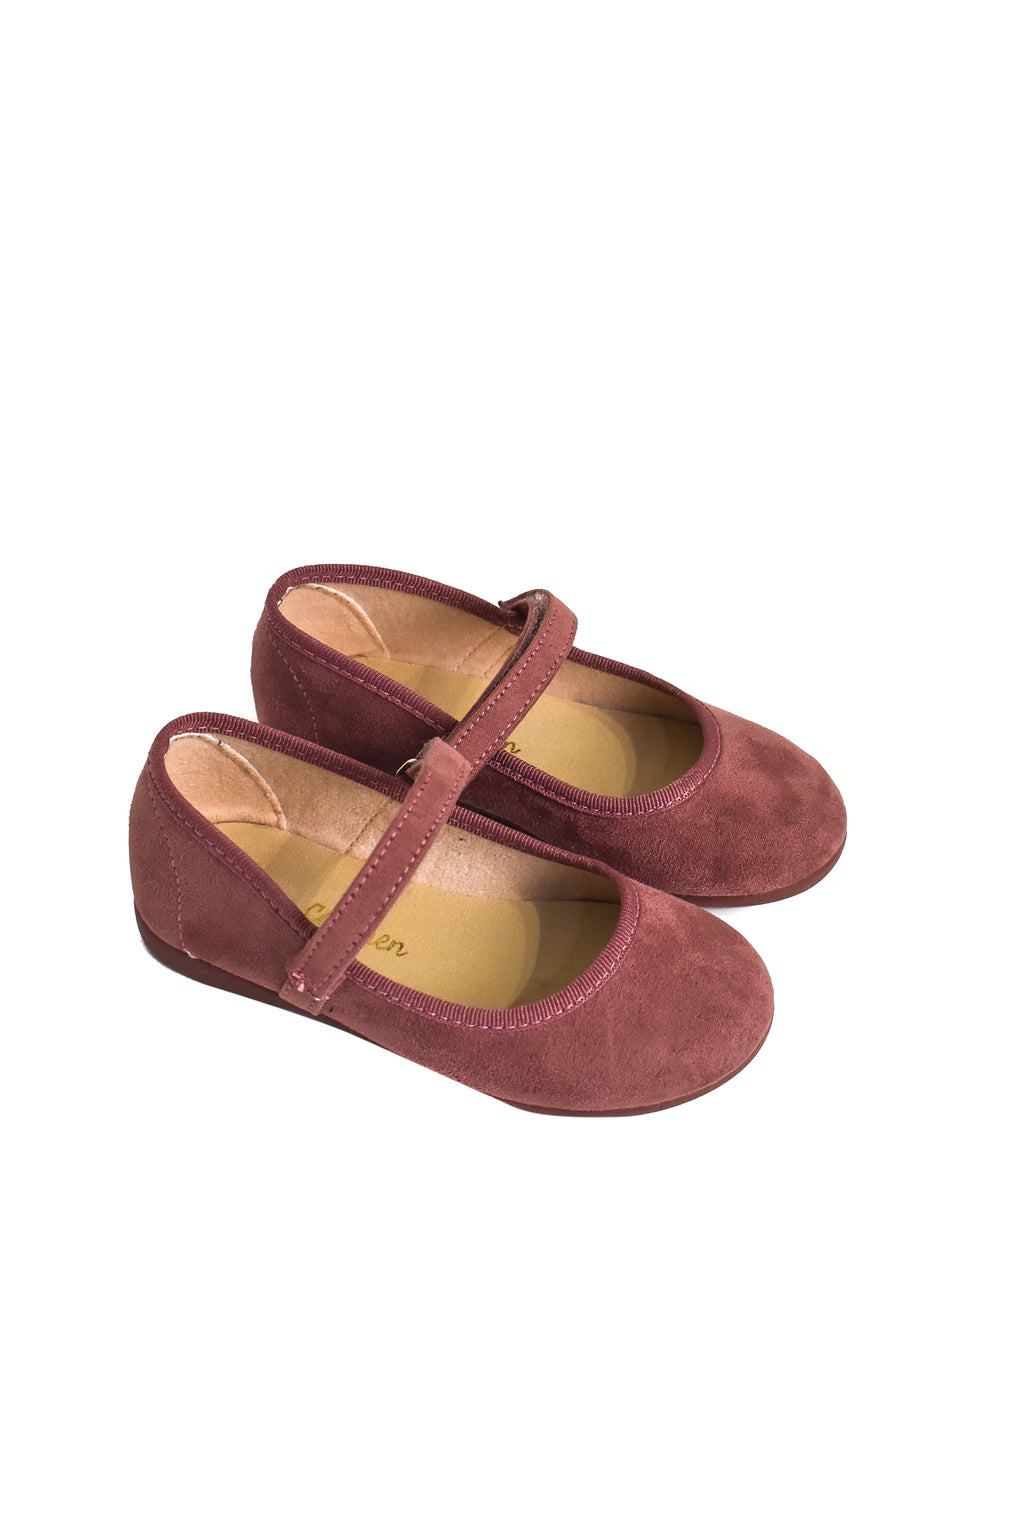 10037713 Dona Carmen Kids~Shoes 3T (EU 25) at Retykle